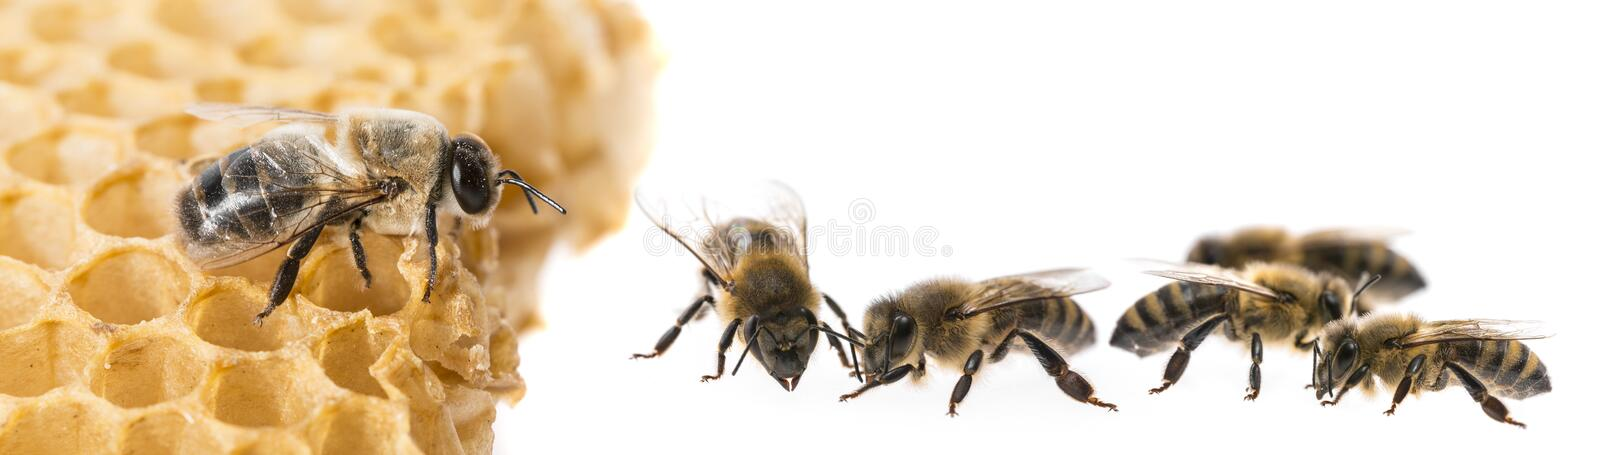 Bee drone and bee workers royalty free stock images